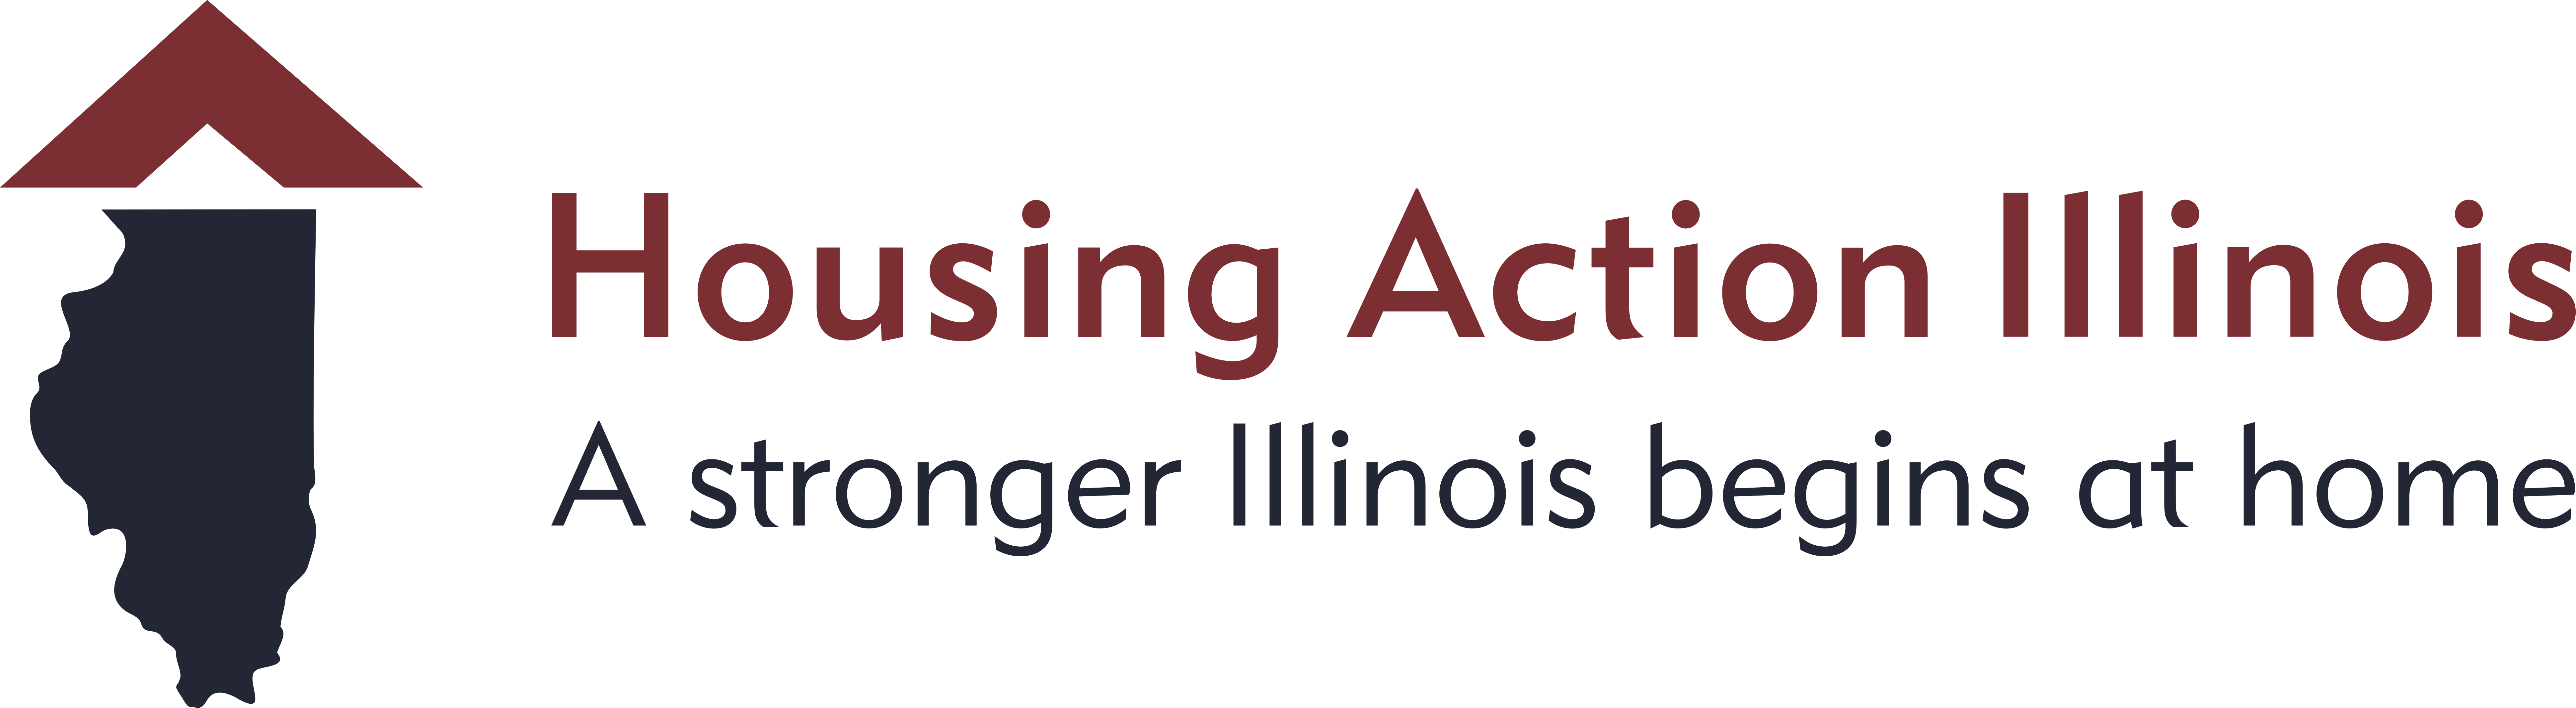 Housing Action Illinois